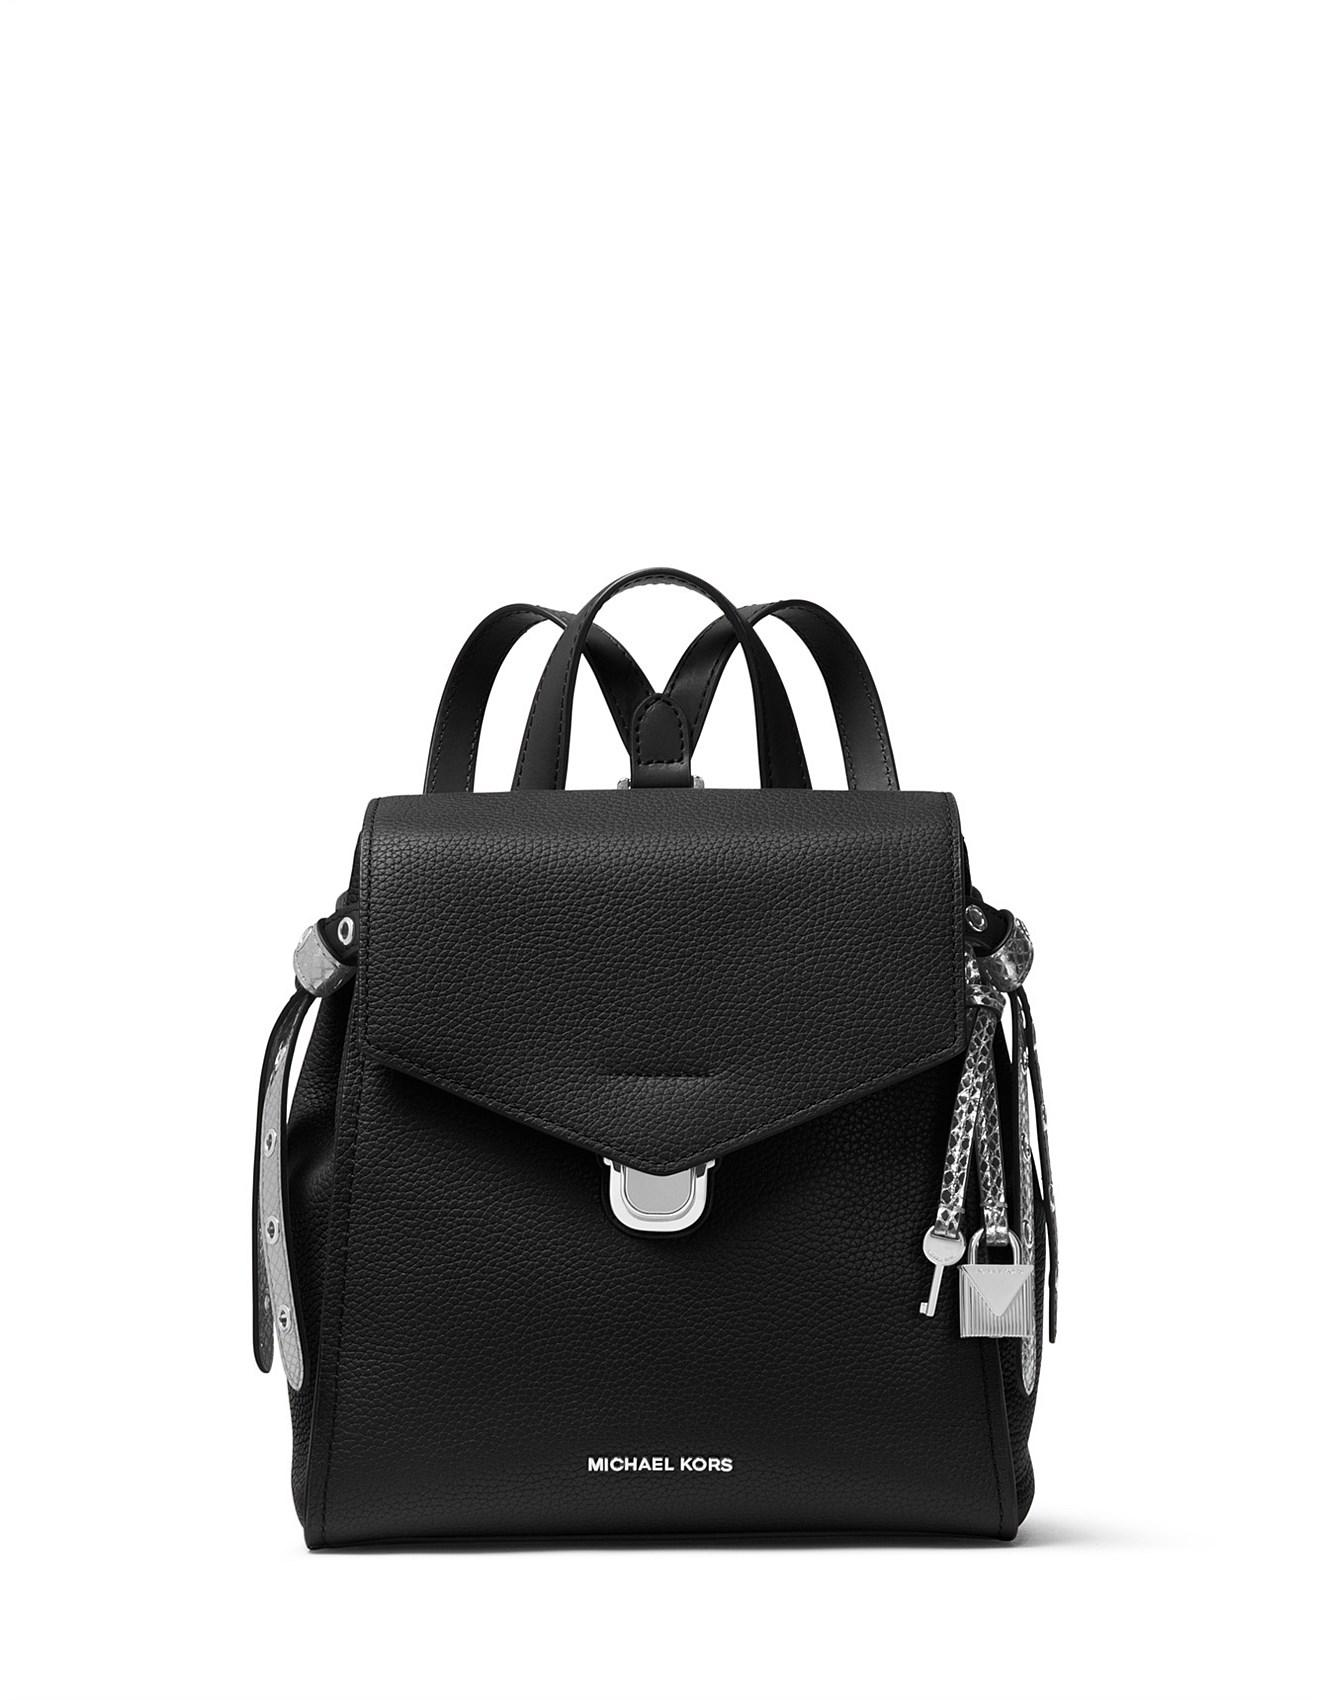 03419be79a9ea Michael Kors - Black Bristol Small Leather Backpack - Lyst. View fullscreen